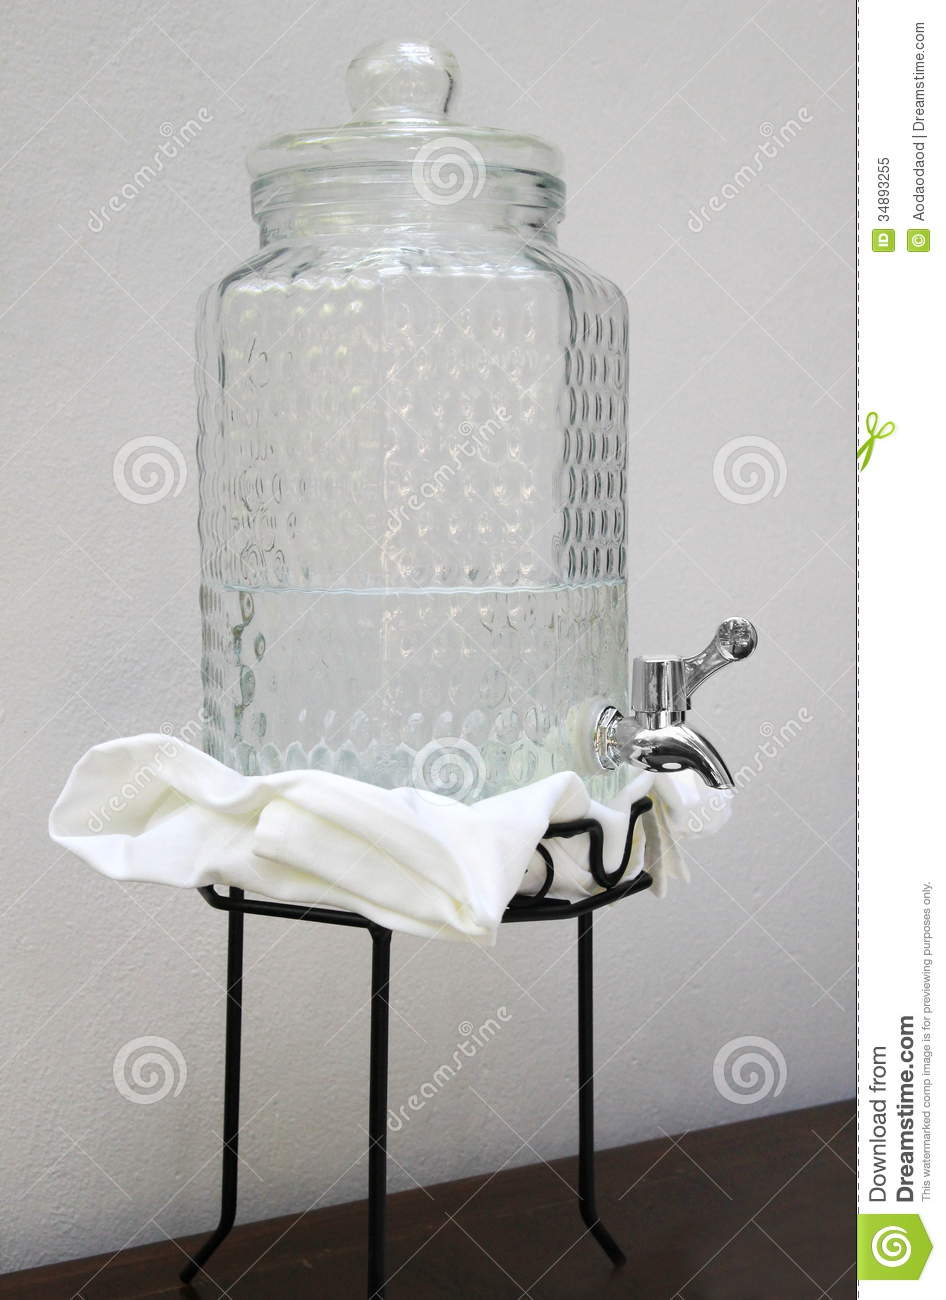 Glass water jug stock image image of machine home faucet 34893255 - Glass filtered water pitcher ...